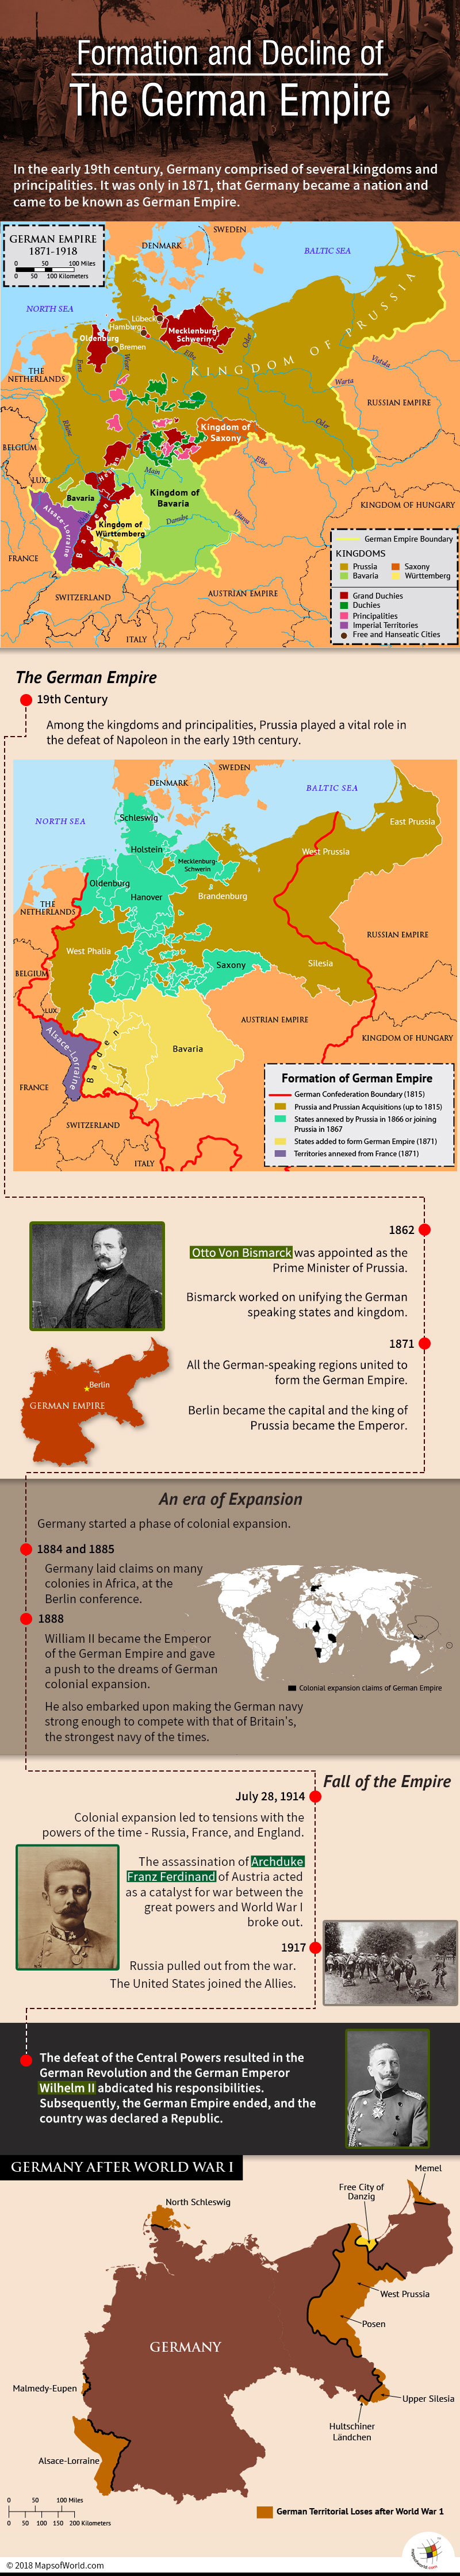 Infographic elaborating history of Germany